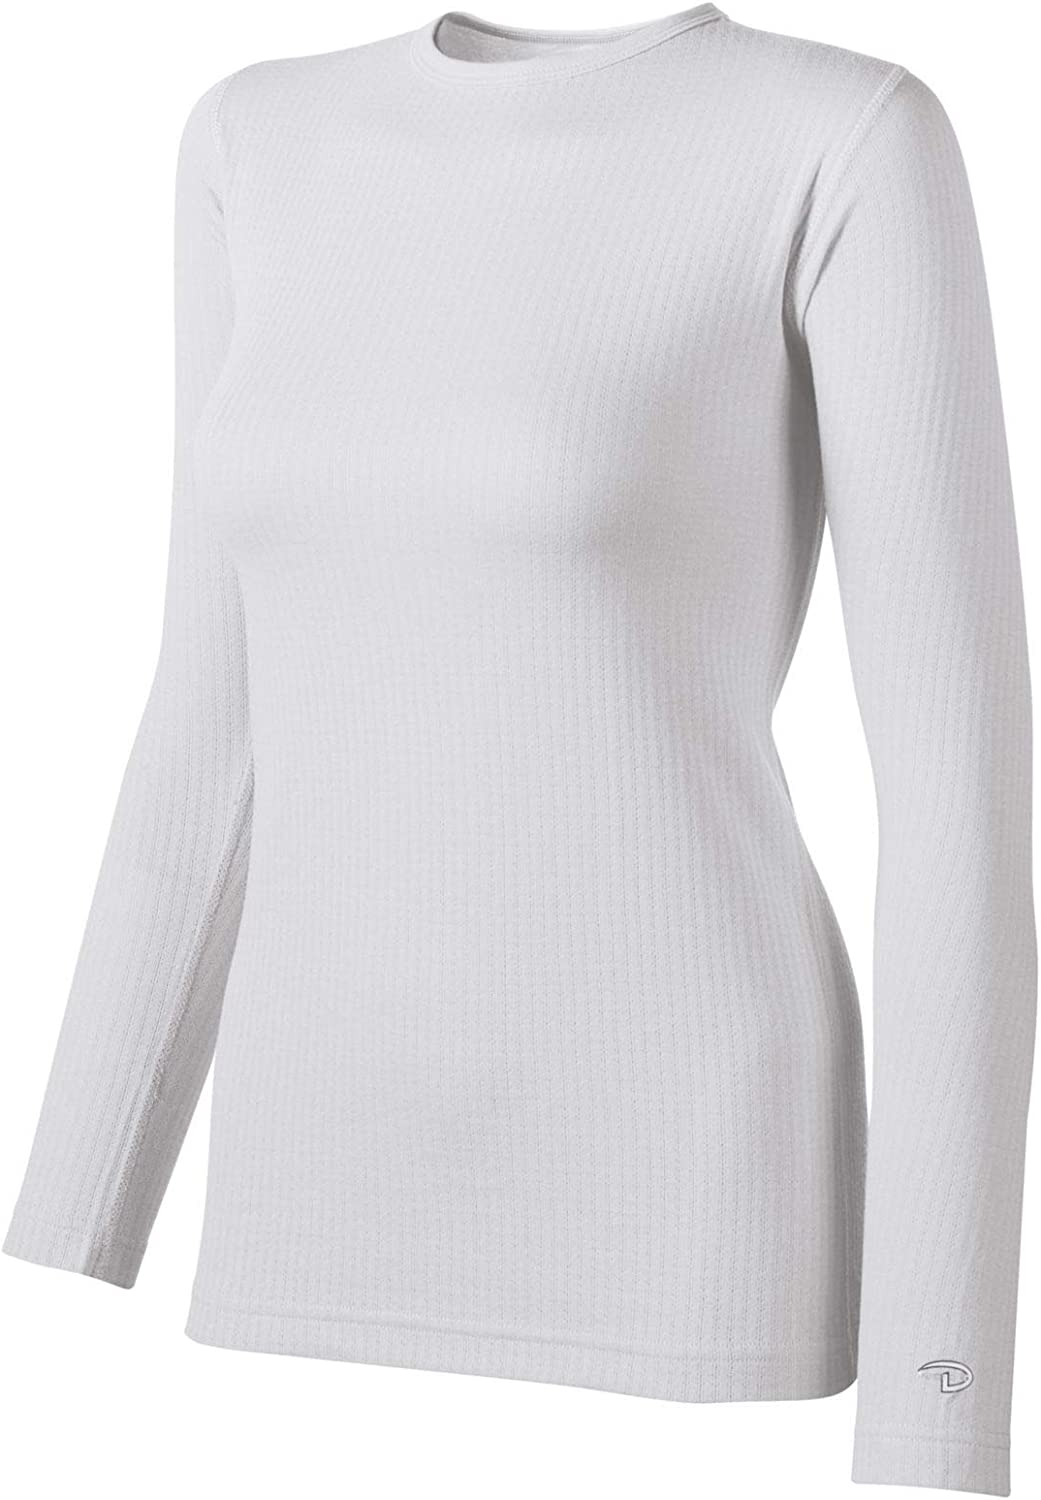 Duofold Women's Mid Weight Wicking Thermal Shirt, White, X-Small